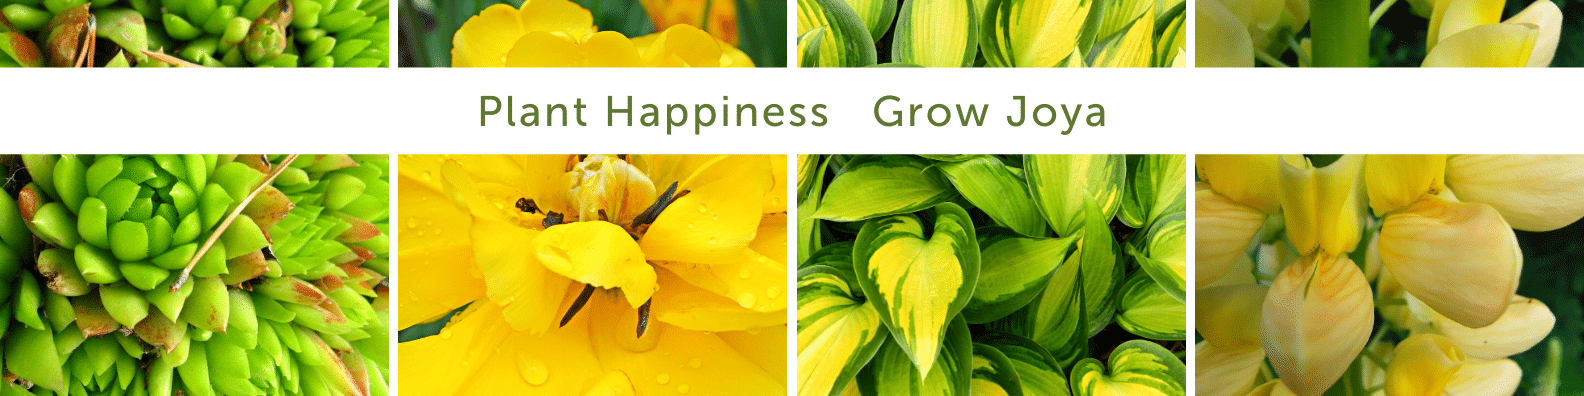 """A collage of plants, with the text """"Plant Happiness Grow Joya"""" overlaid on top."""